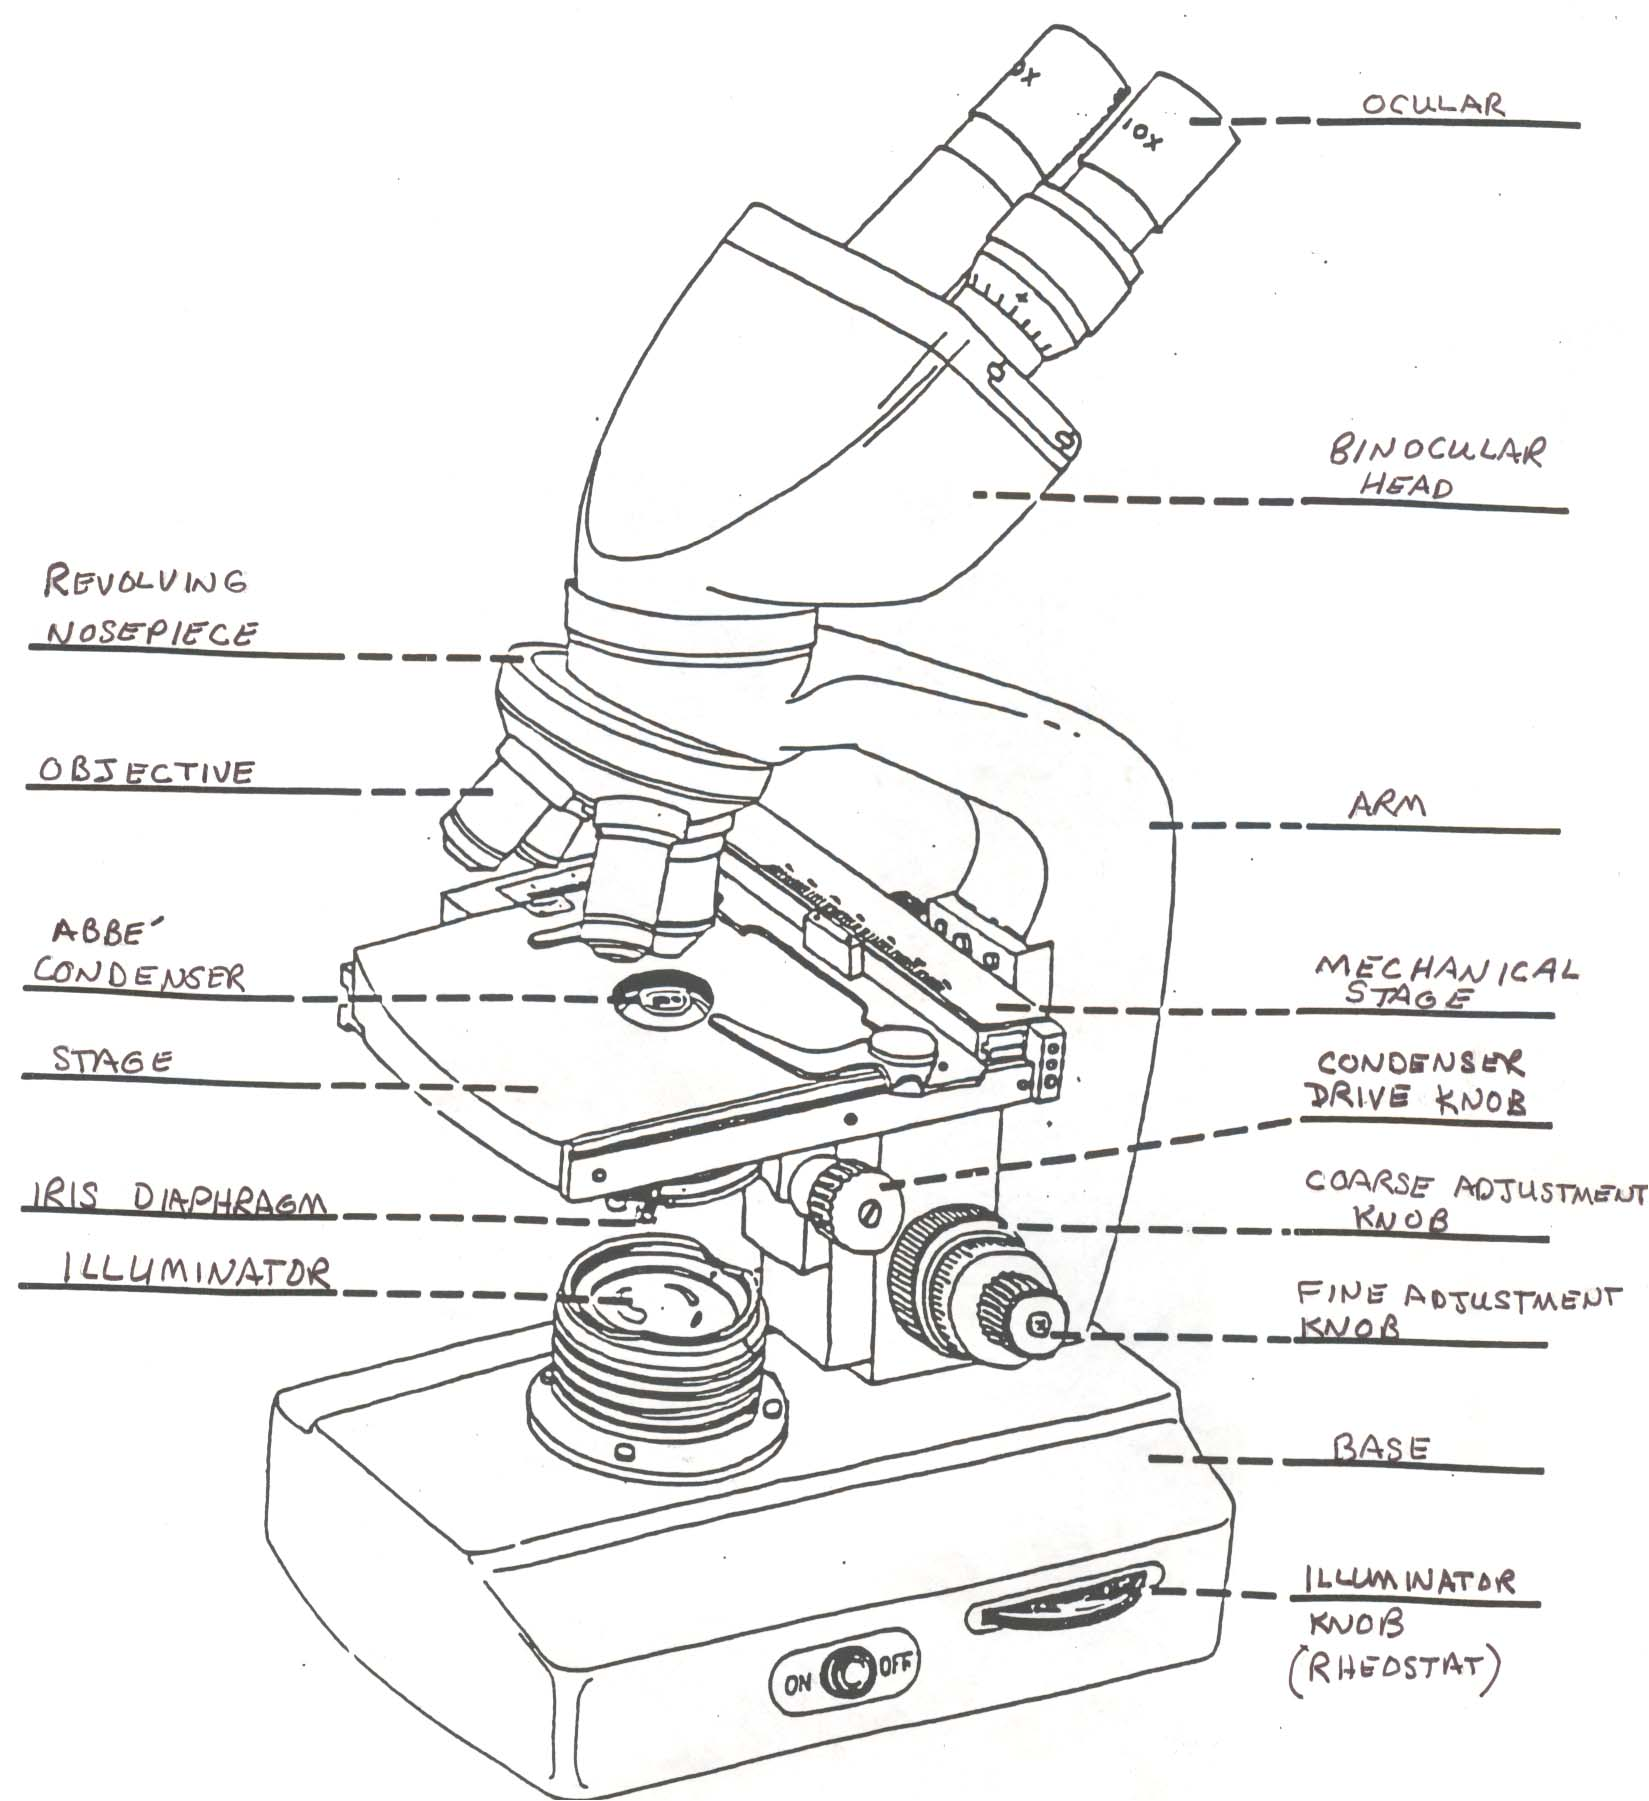 Microscope Drawing Worksheet microscope drawing labeled